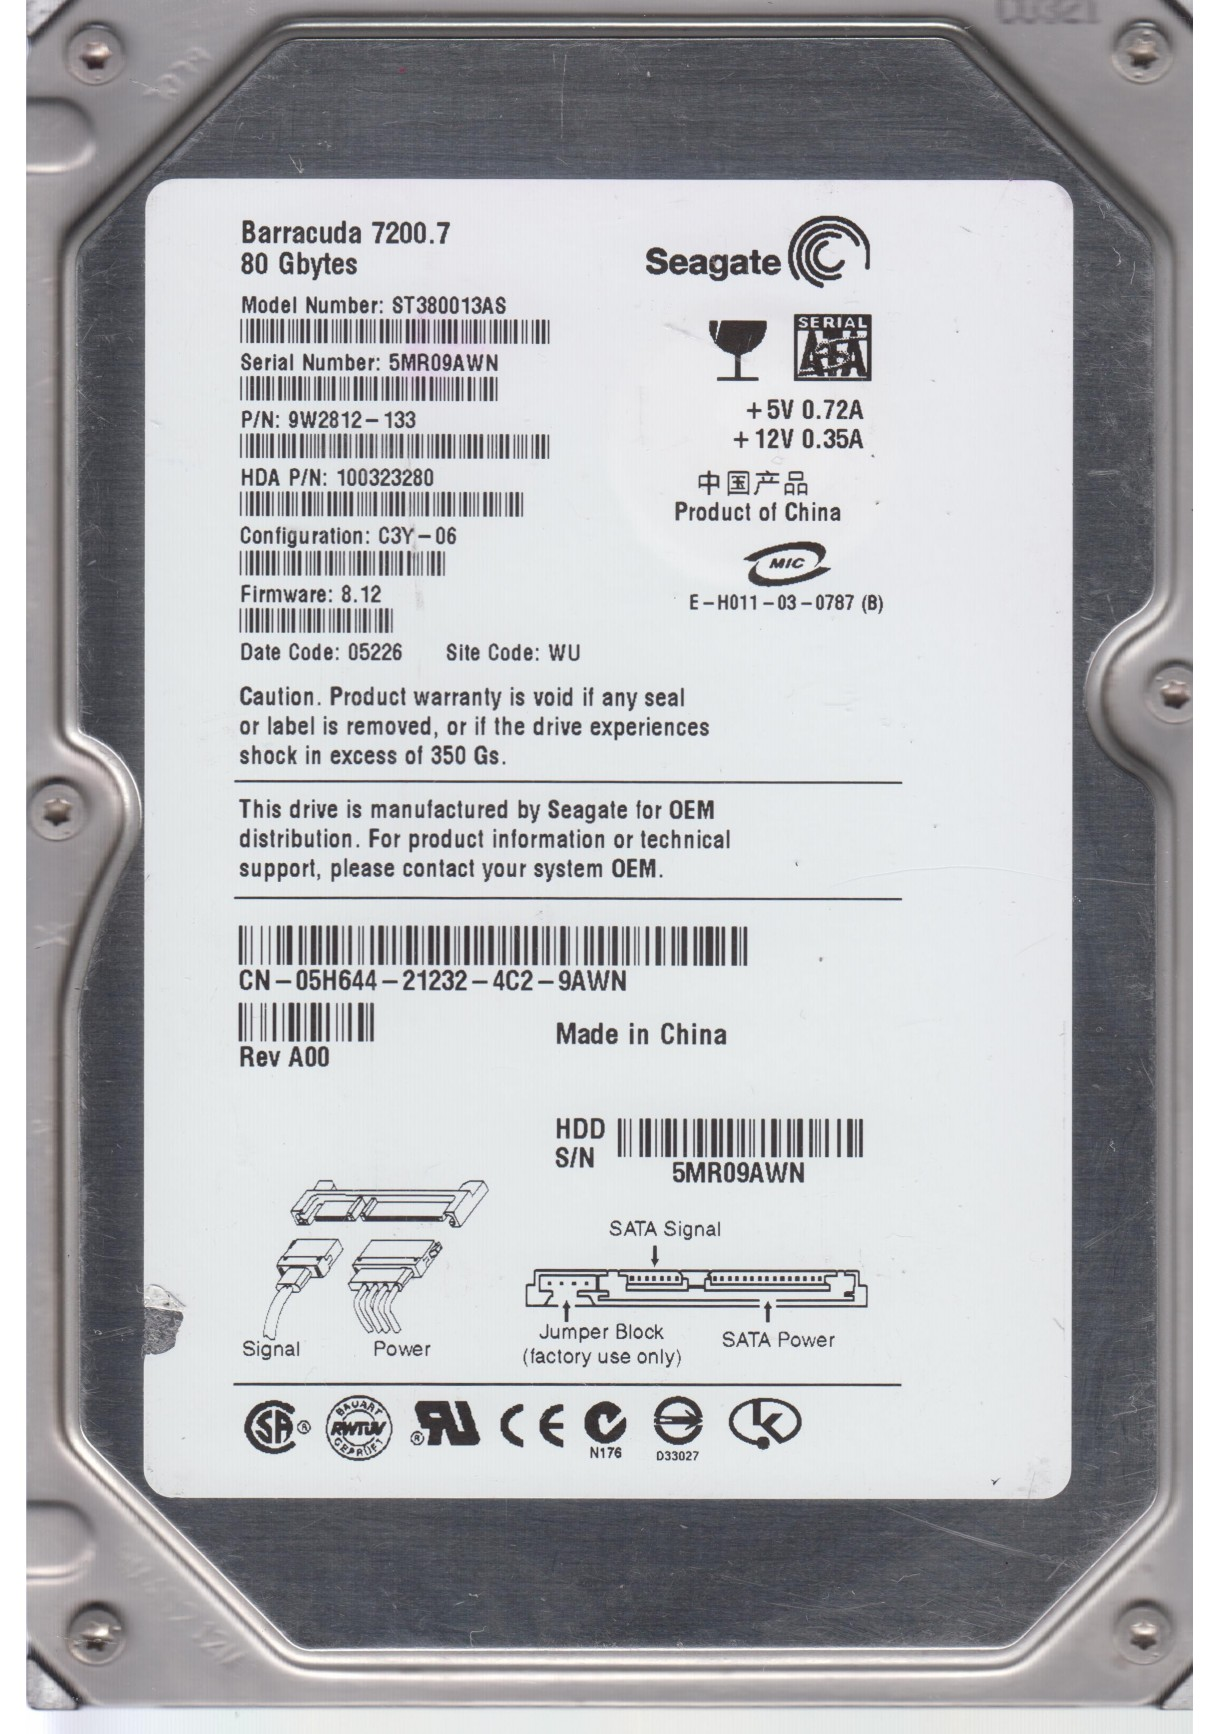 SEAGATE ST380013AS FW 8.12 9W2812-133 80GB 3.5